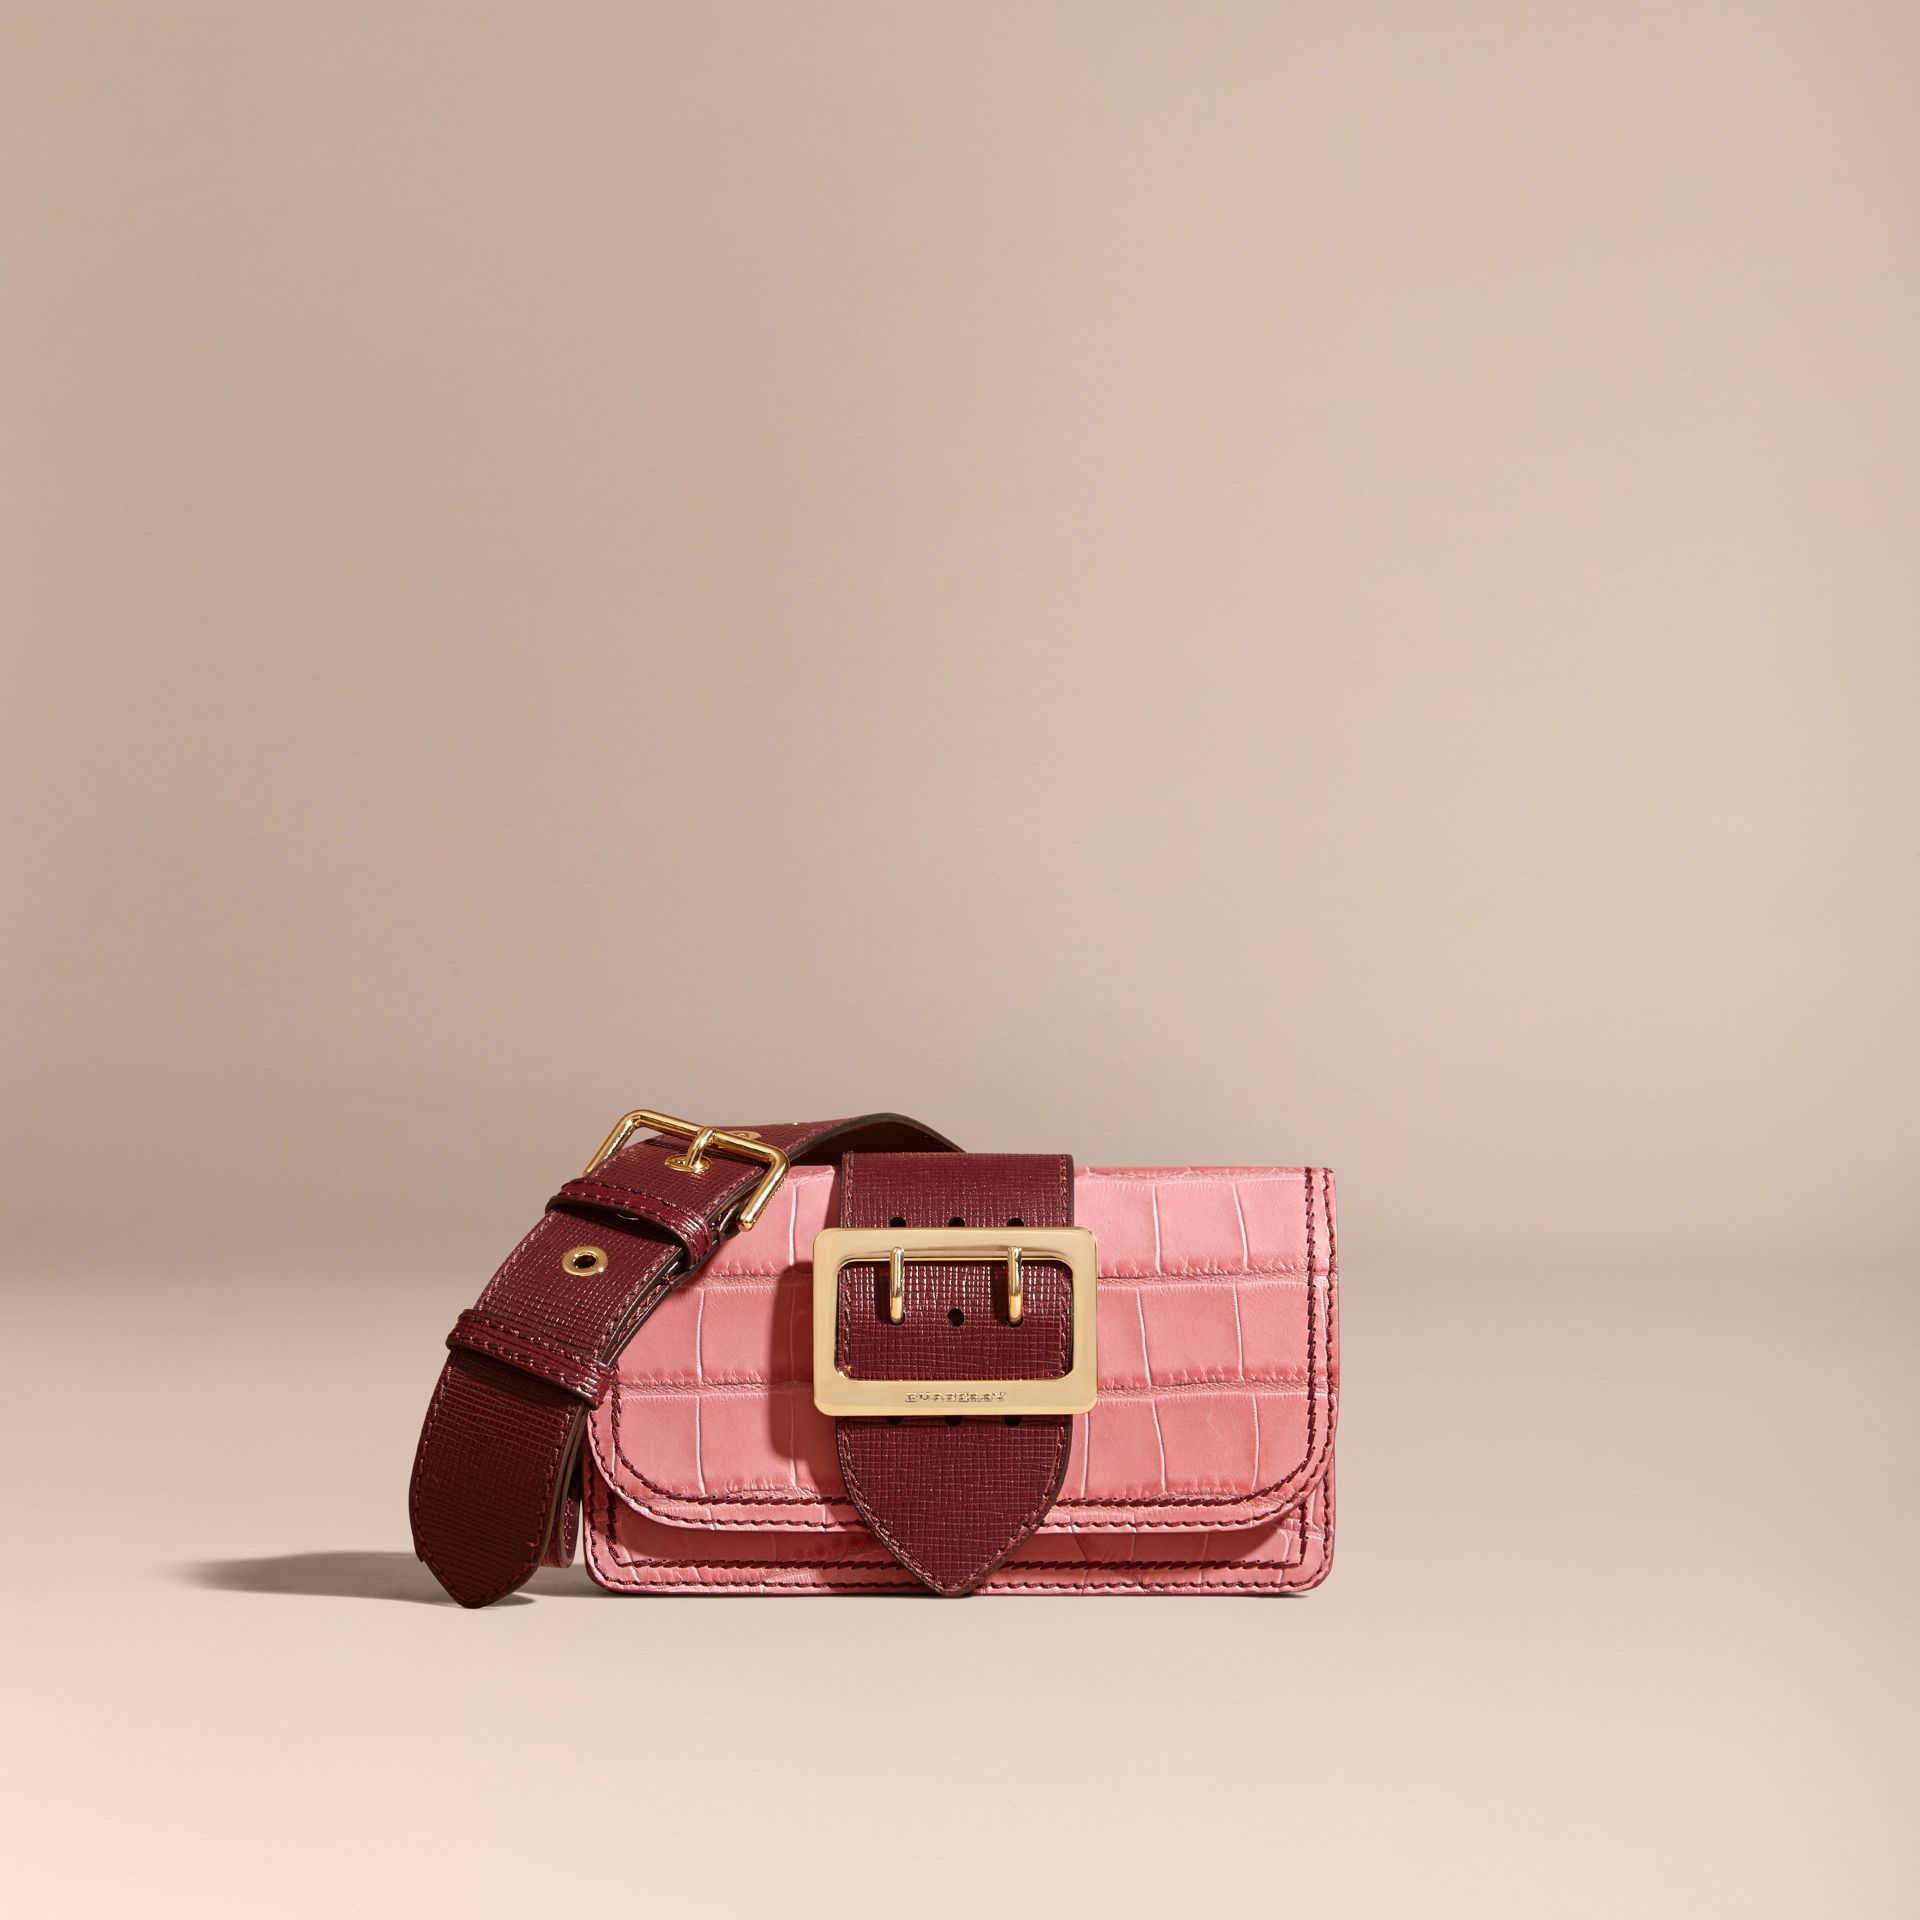 Dusky pink/ burgundy The Small Buckle Bag in Alligator and Leather Dusky Pink/ Burgundy - gallery image 9